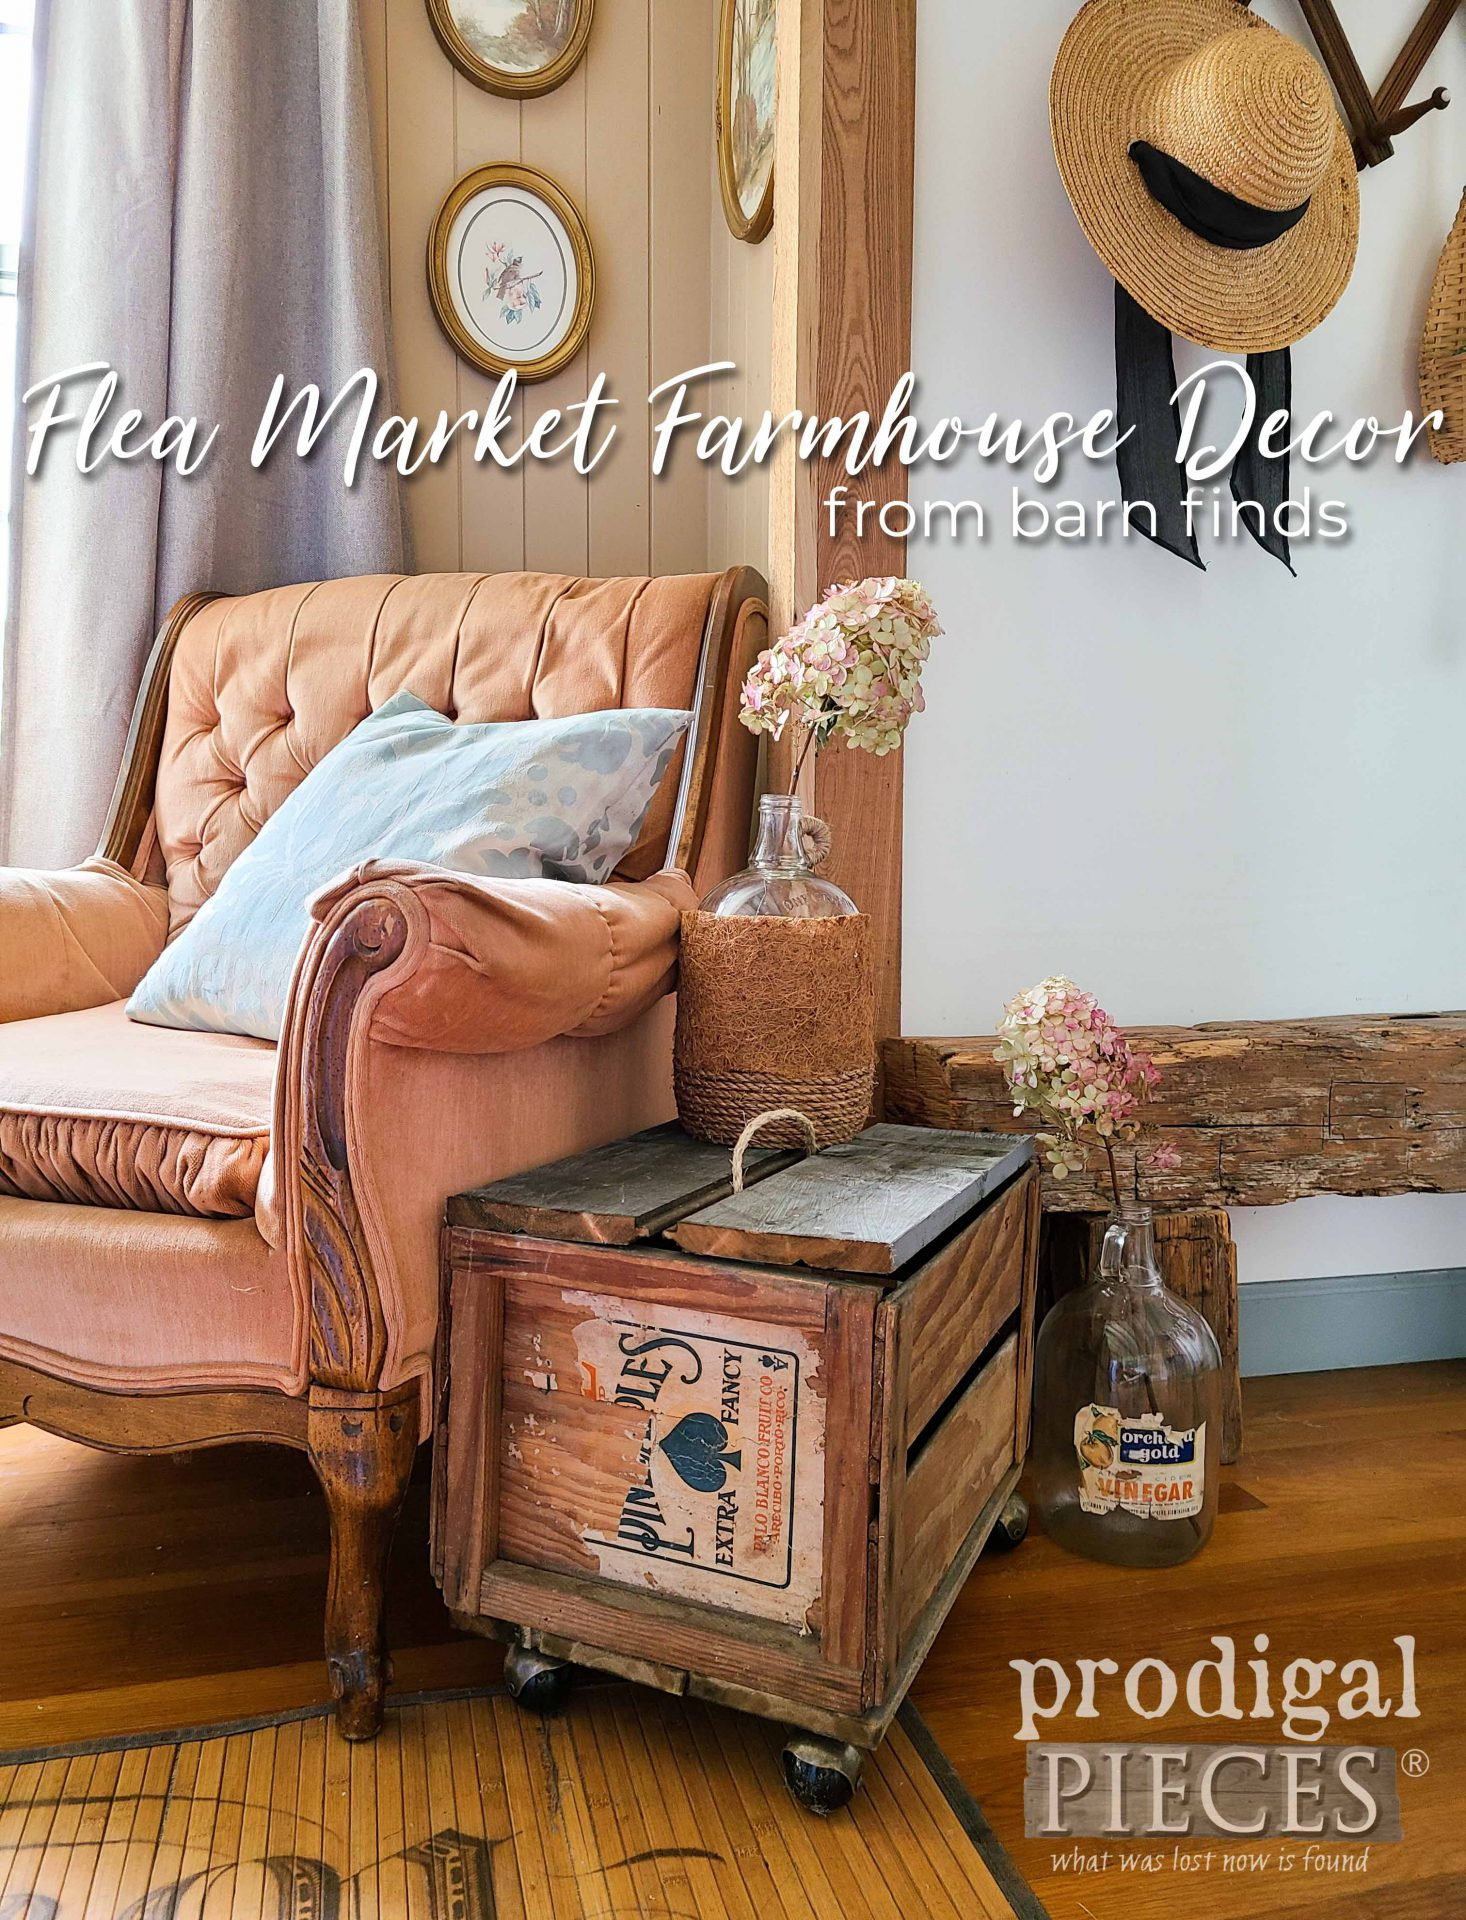 Create your own flea market farmhouse decor using barn finds   Head to Prodigal Pieces   prodigalpieces.com #prodigalpieces #home #fleamarket #home #farmhouse